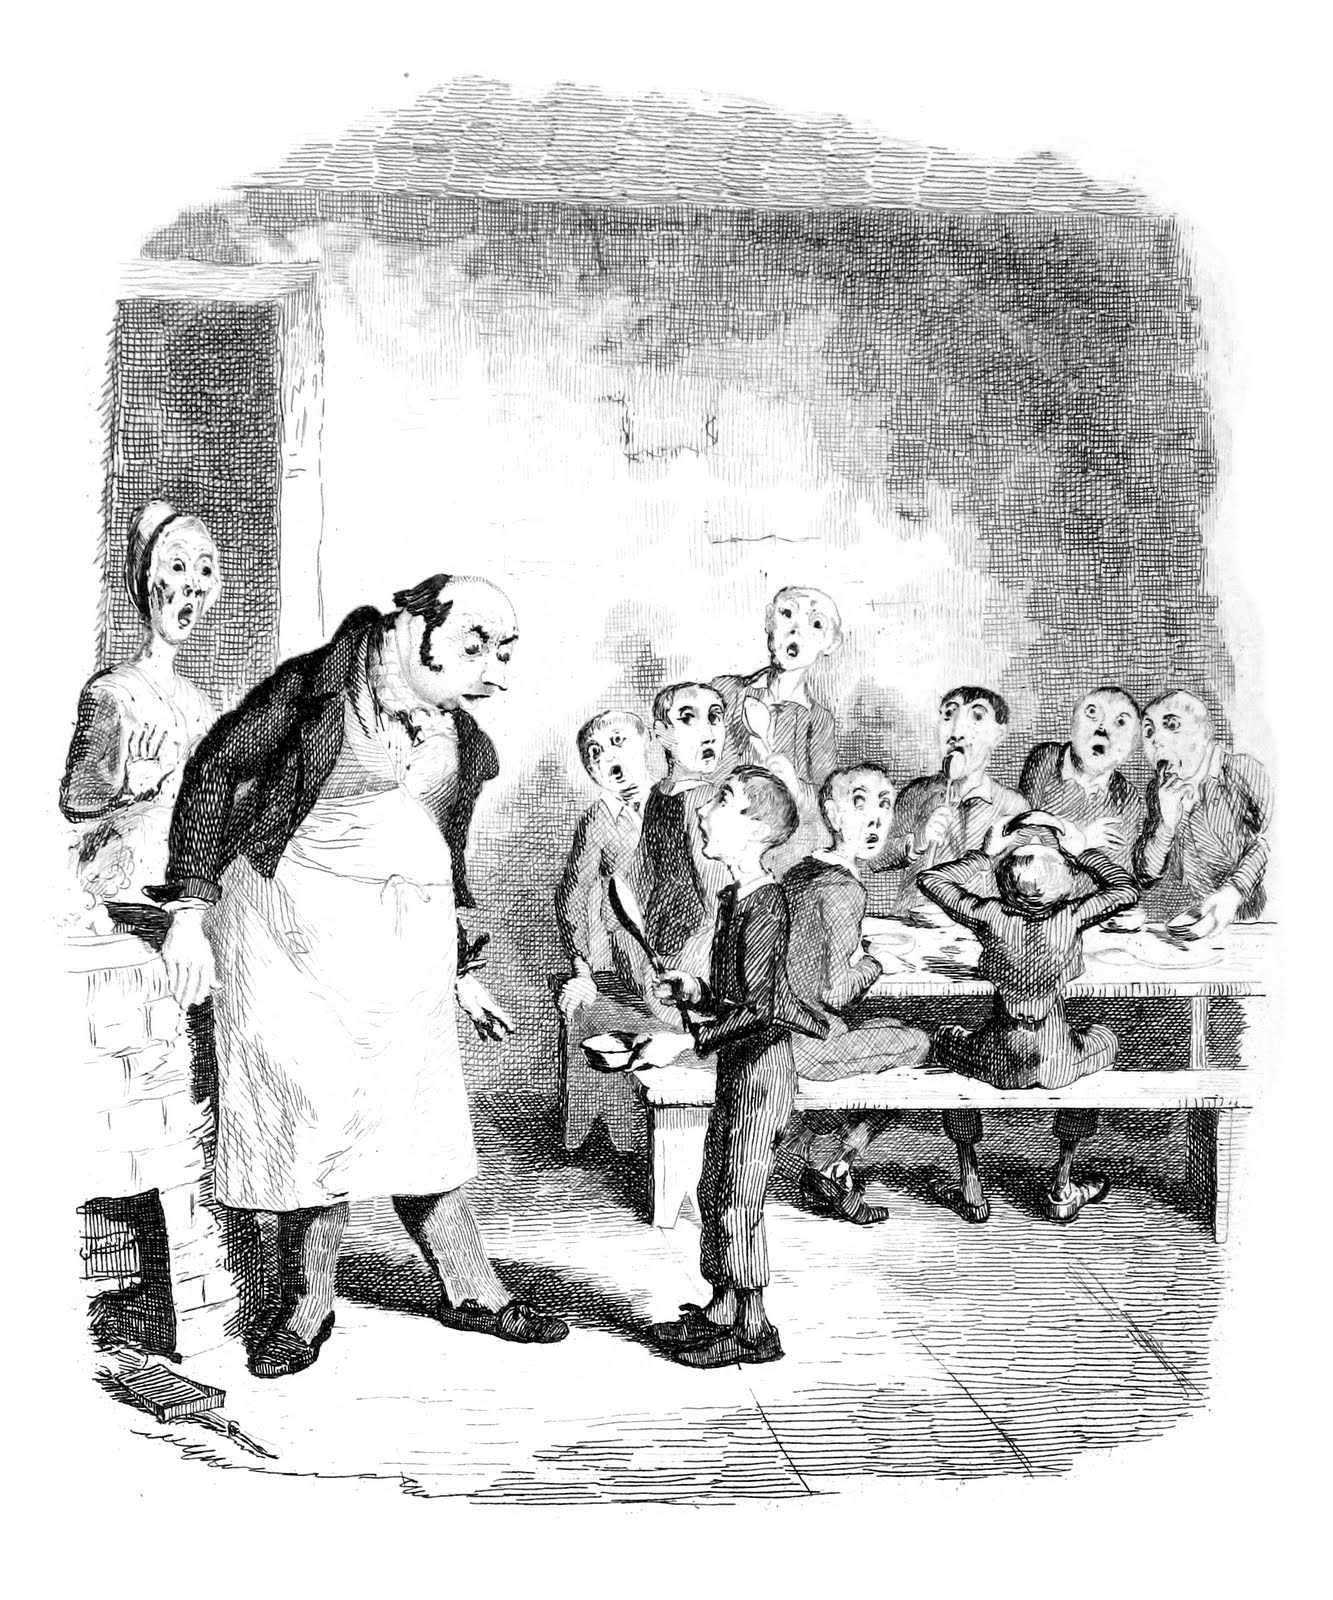 dickens presentation of the four spirits essay A christmas carol essay many times in life, we do not realize the importance of something until it is gone and is too late to reclaim however, in a christmas carol by charles dickens, we are told the story of a man who, although undeserving, is offered an opportunity to redeem himself, to receive a second chance.